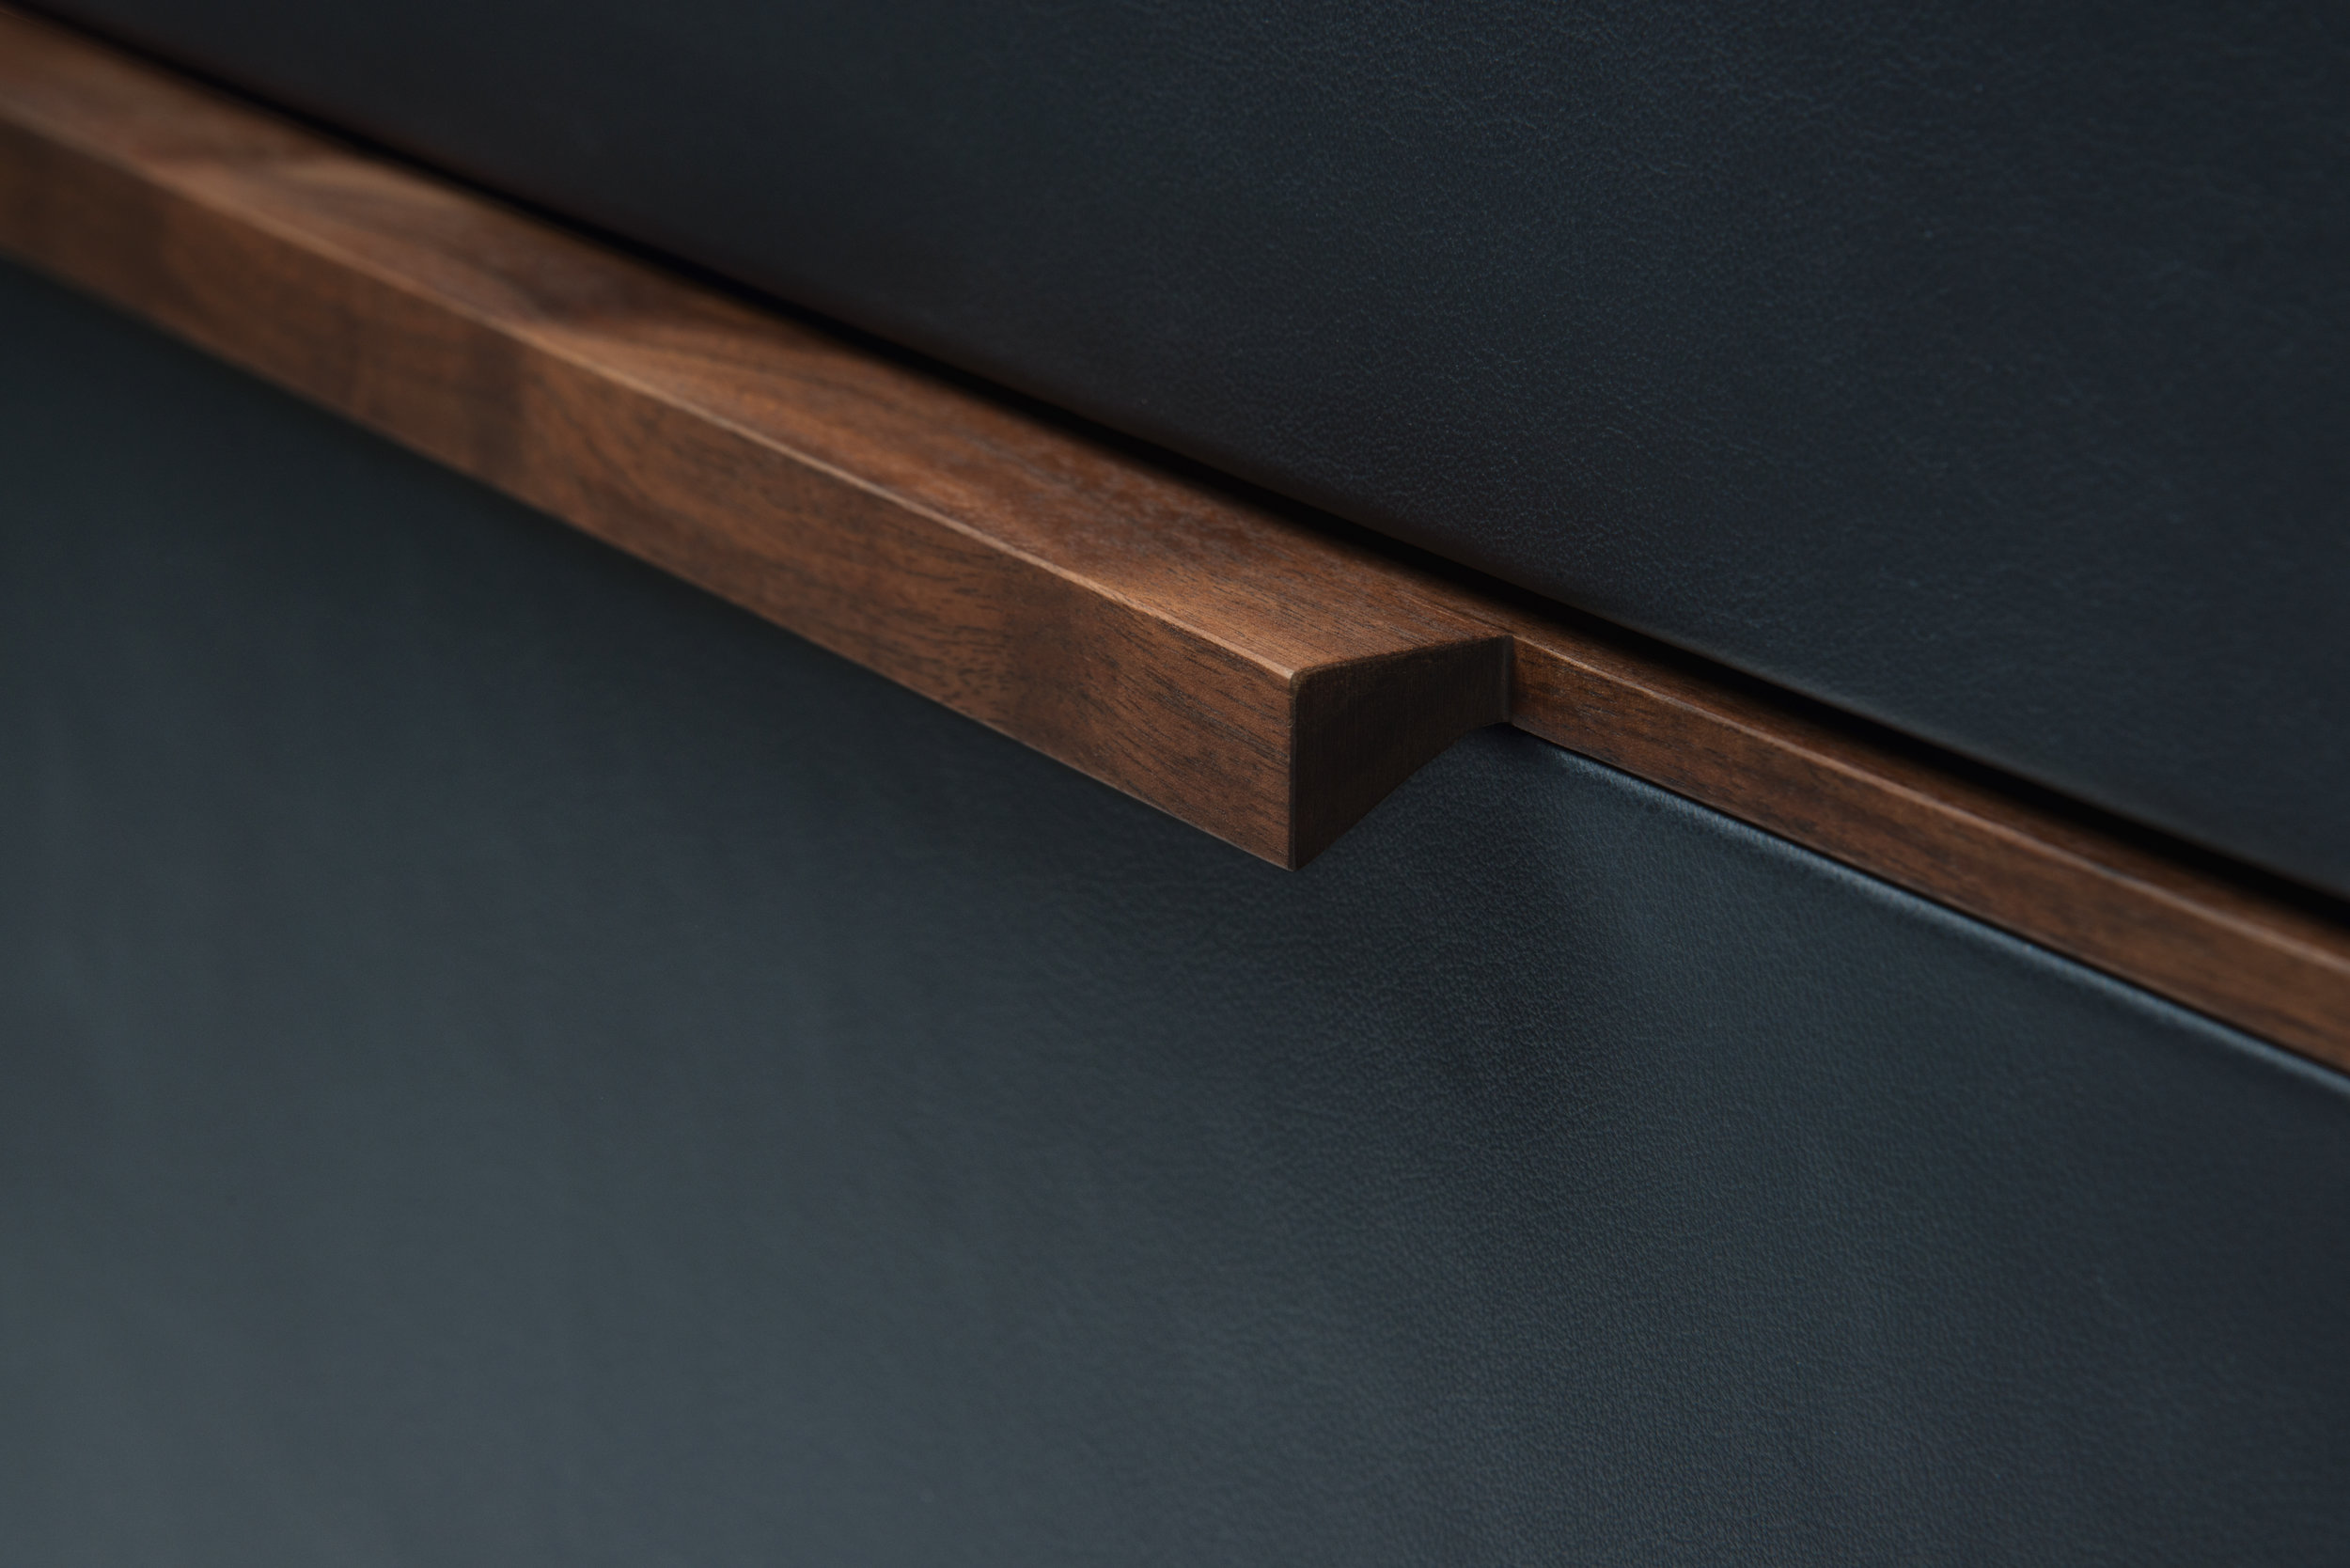 > Detail of pulls on leather-wrapped drawer fronts.